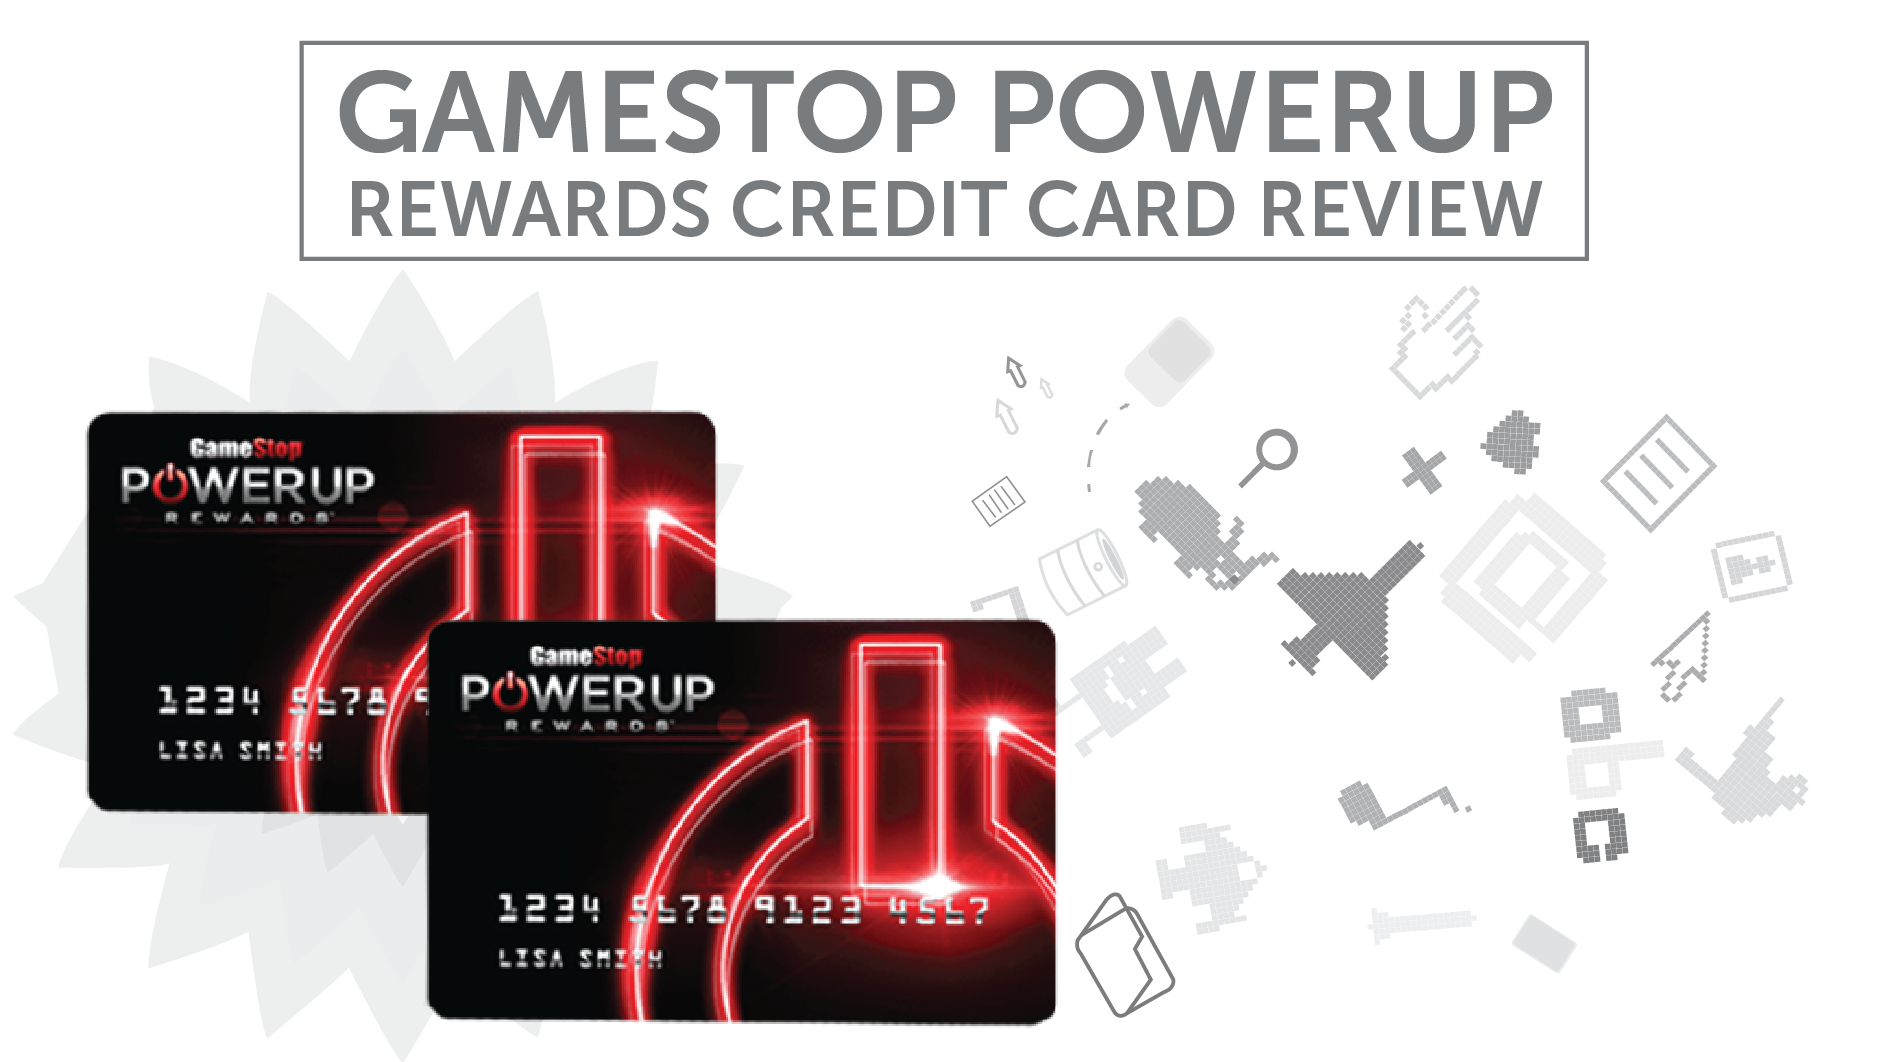 Gamestop Powerup Rewards Credit Card Payments Applycard Co